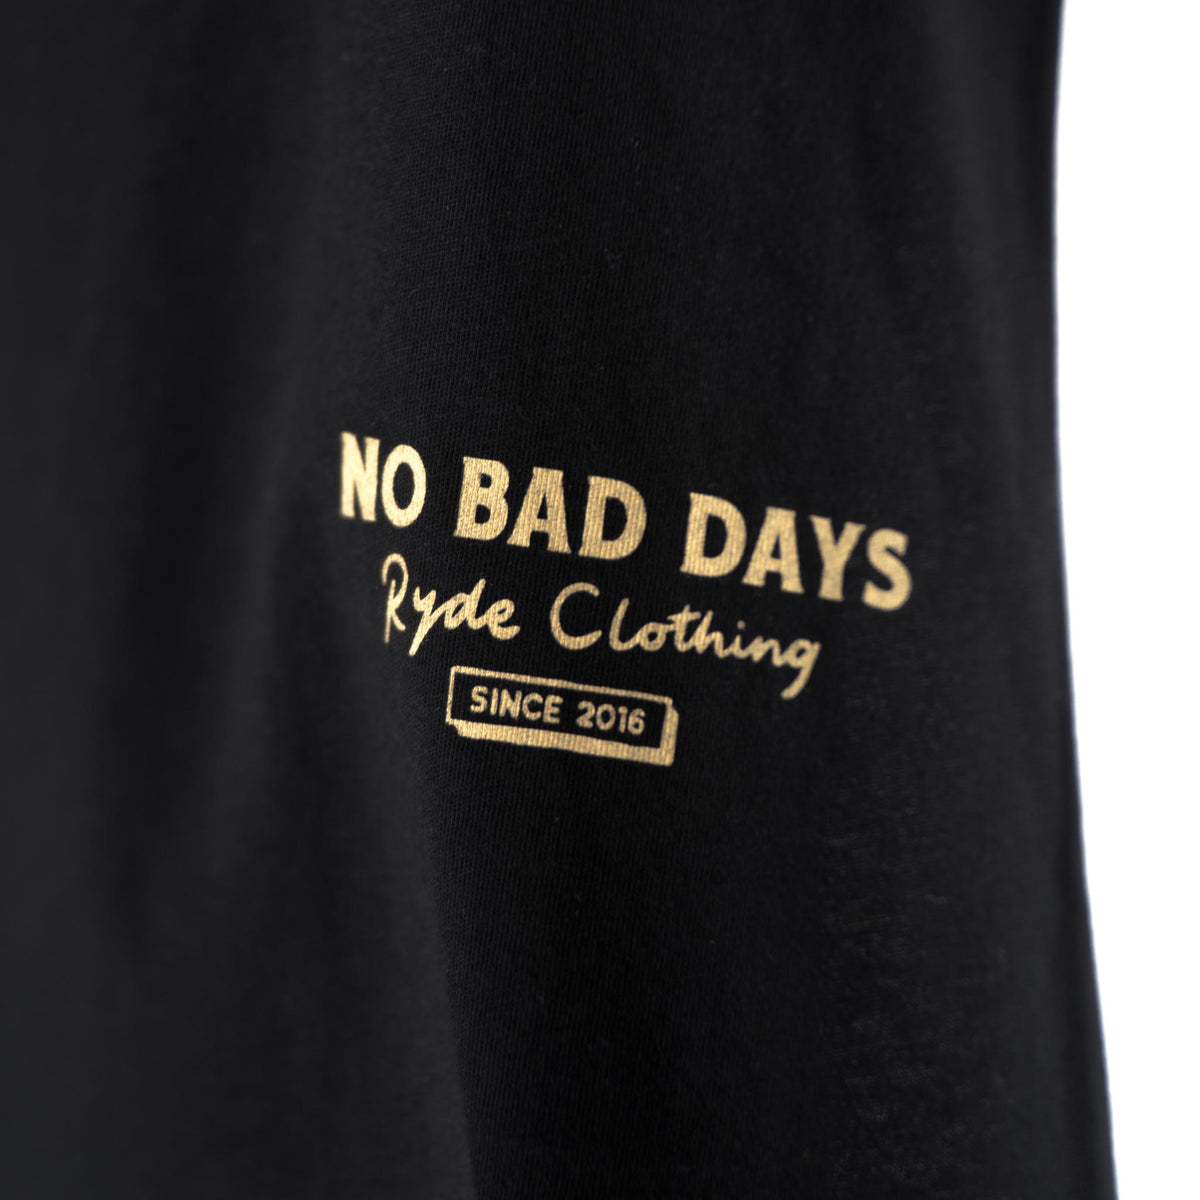 No Bad Days Tank